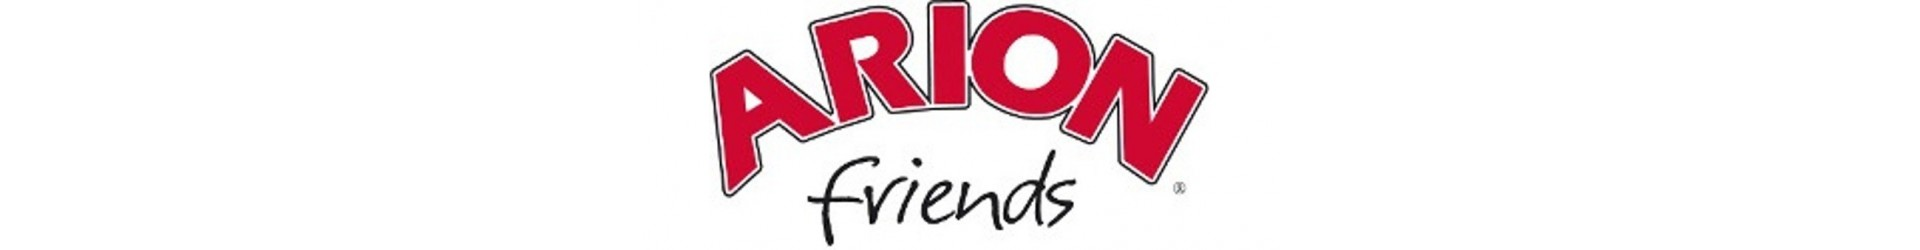 Arion Friends